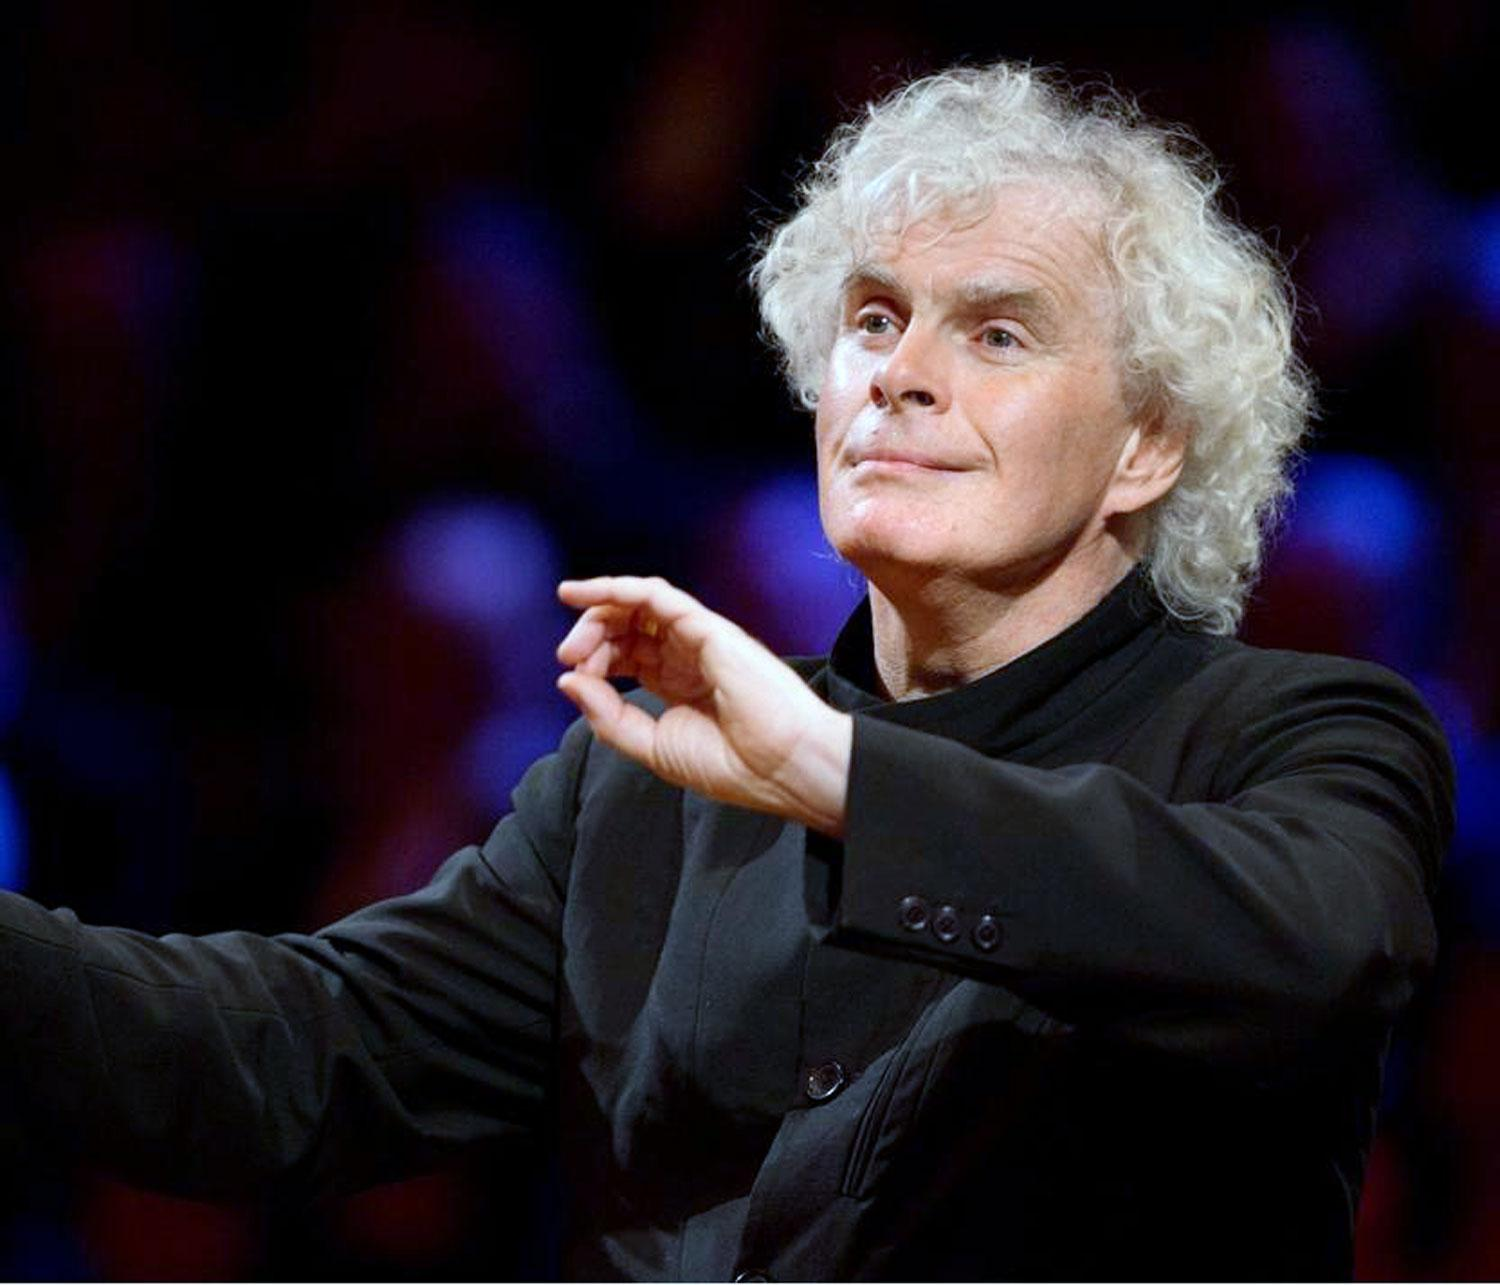 Simon Rattle Fotó: Berliner-Philharmoniker.de